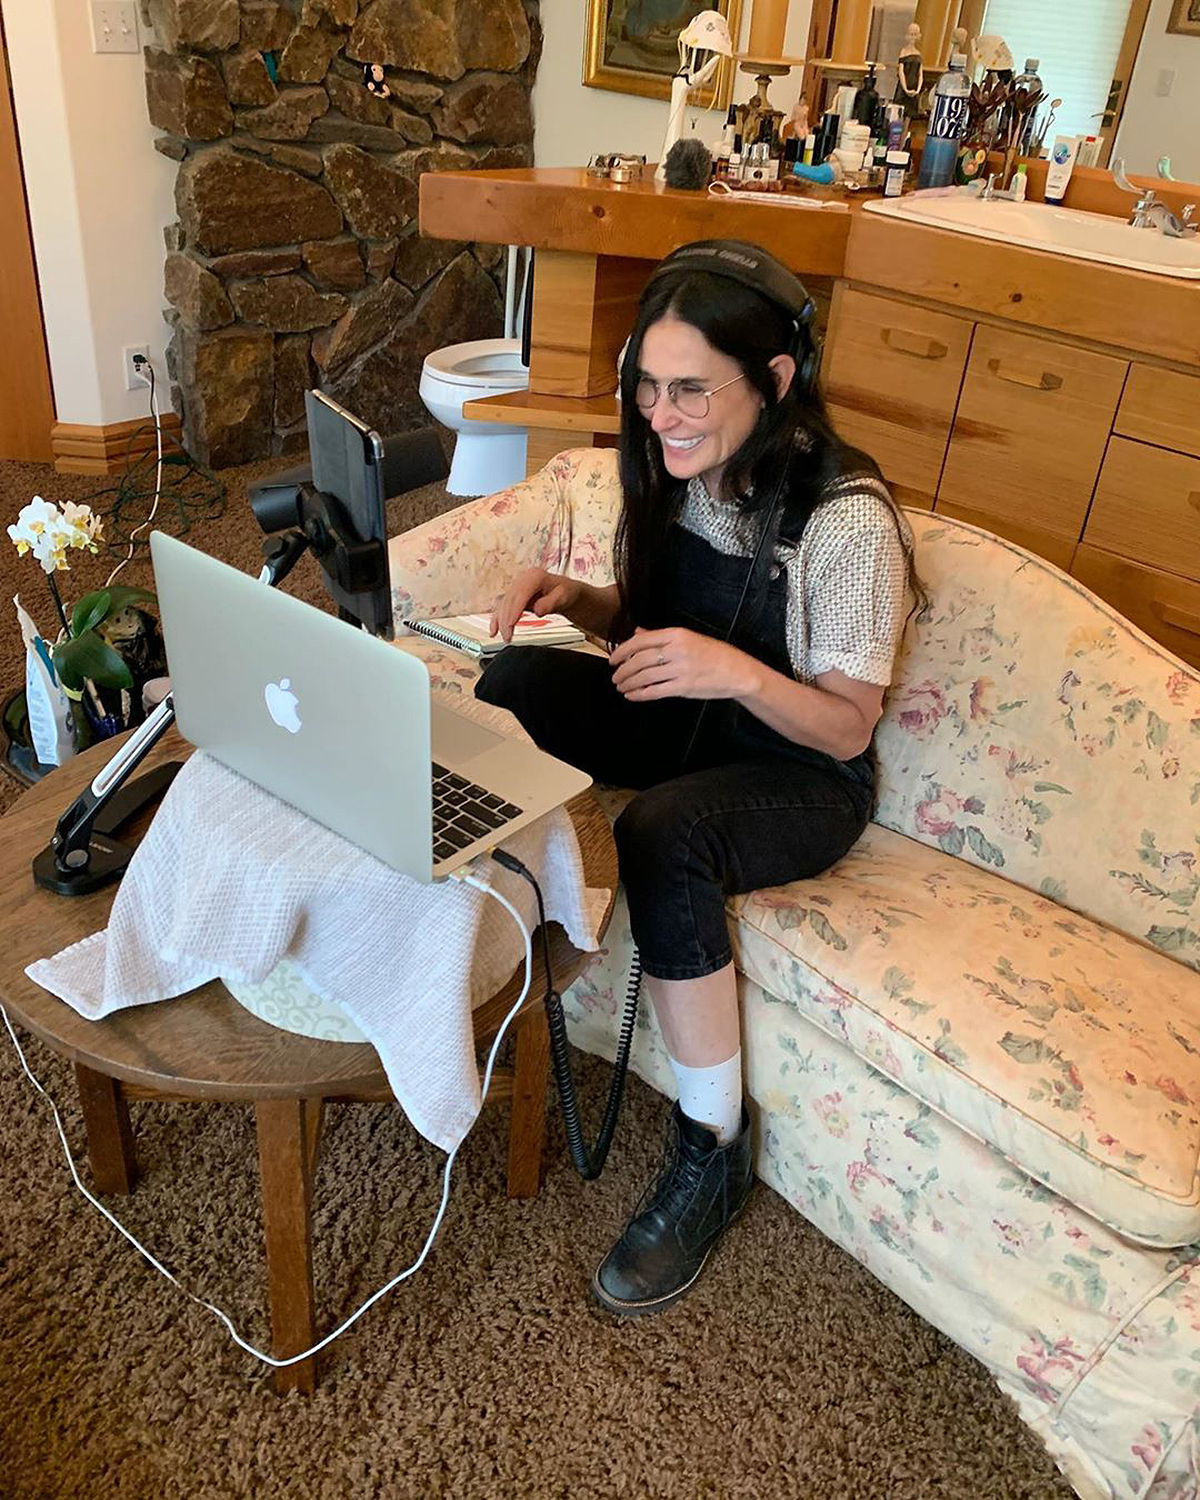 """The Inside Out author uses her bathroom for more than just the standard activities - she's also been using it to record her new podcast series! The actress shared this photo of herself sitting on a white, floral couch (yes, she has a couch in her bathroom) and wrote, """"Excited to finally share what I've been working on! First episode of#DirtyDiana drops Monday, July 13."""""""